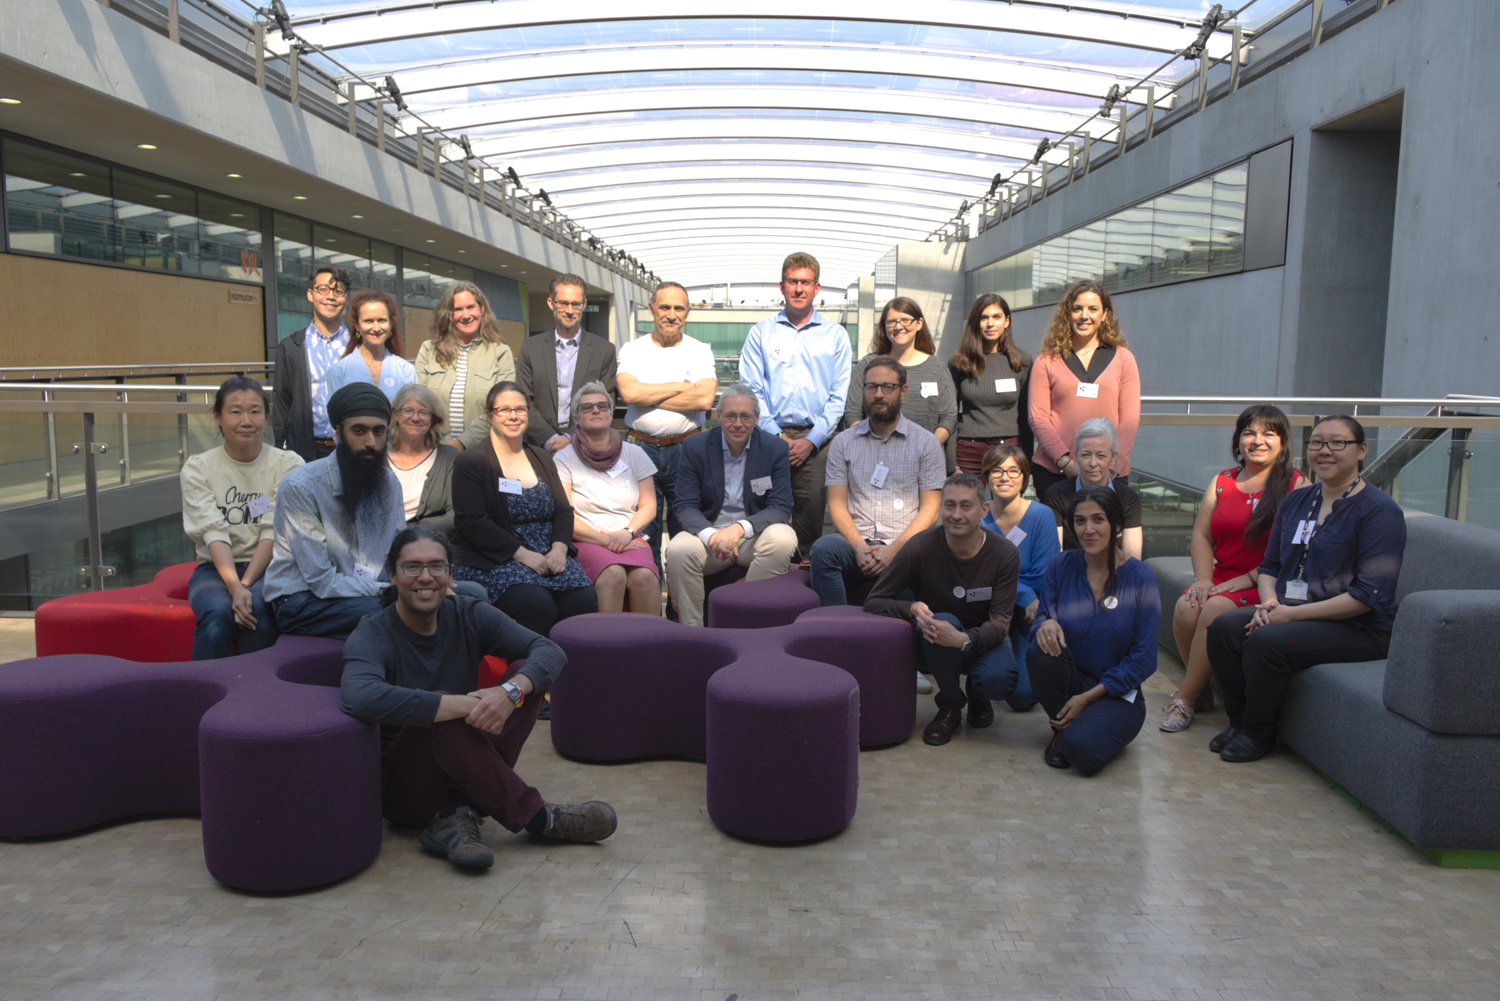 Group photo of workshop participants. Photo by Gabriele Grigorjeva